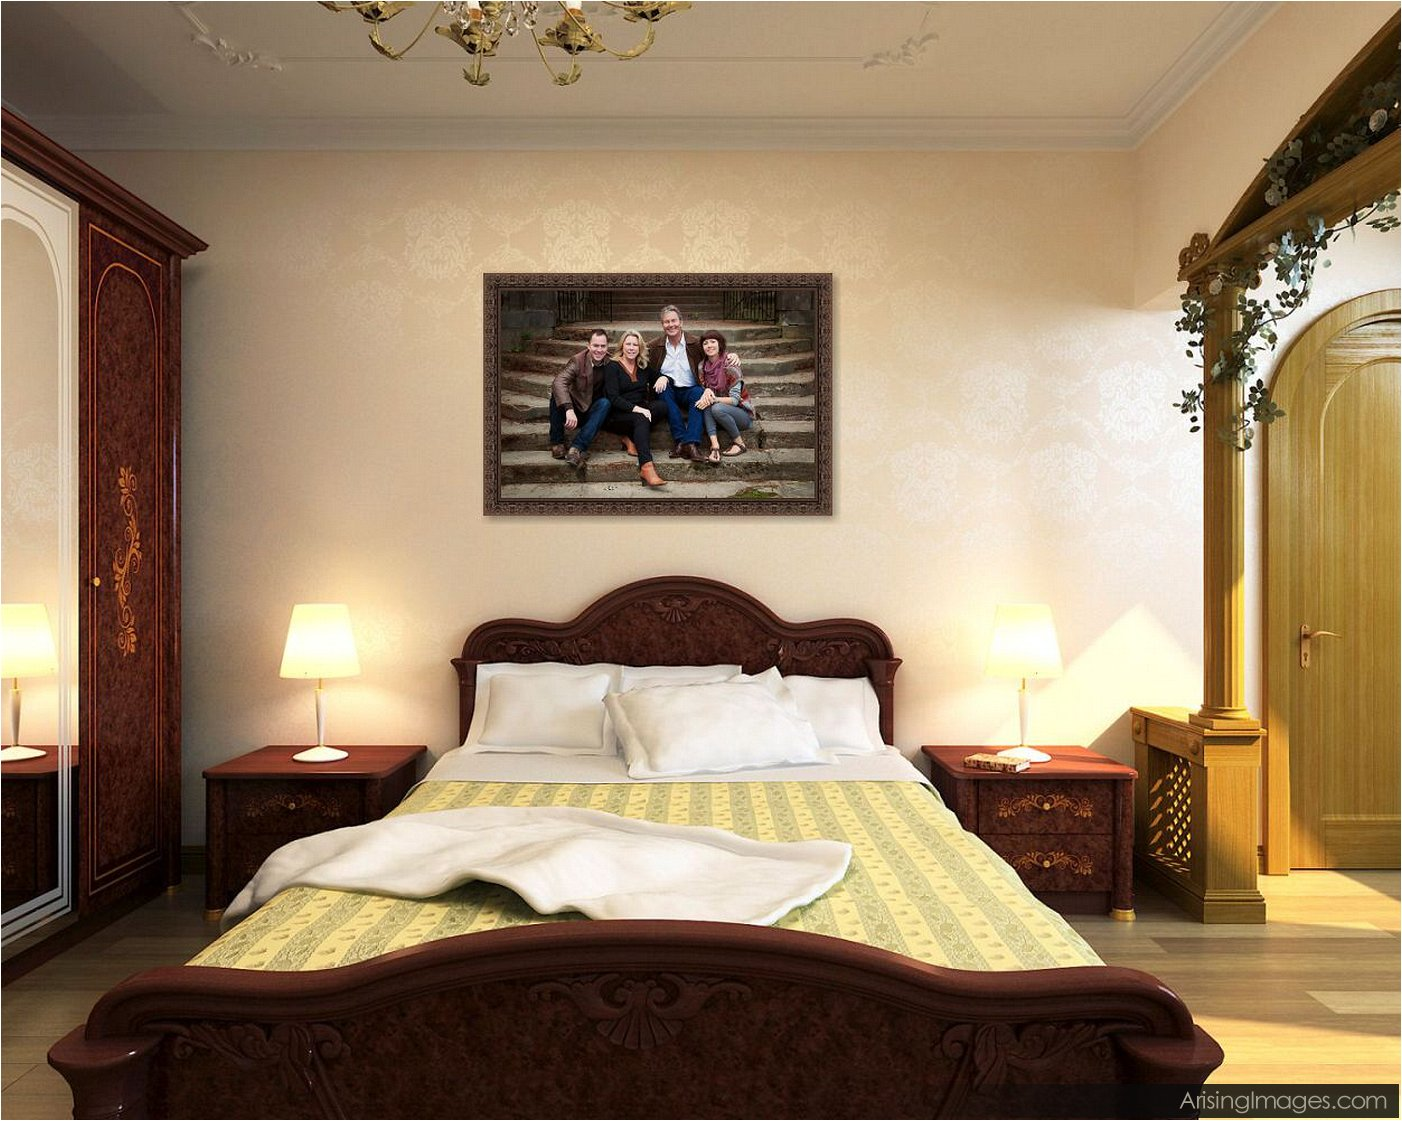 family portraits for your walls